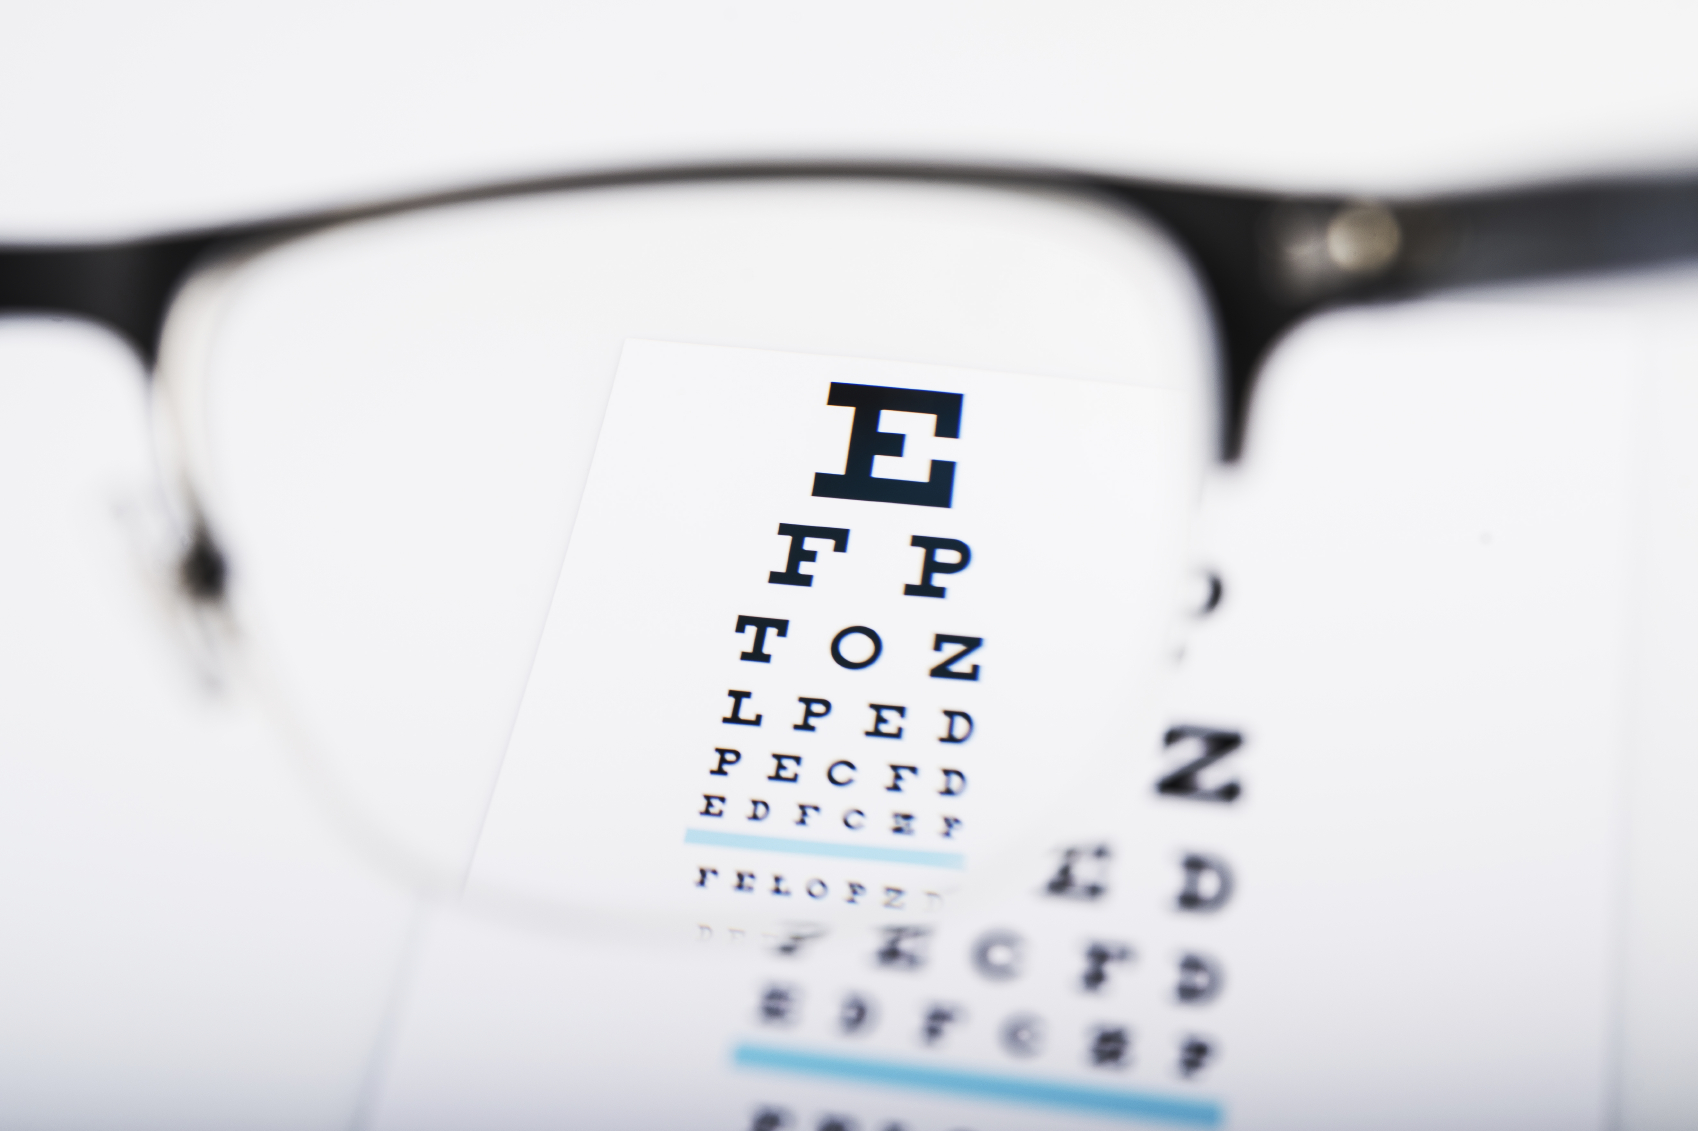 An eyesight text is clearly visible through the lens of glasses.